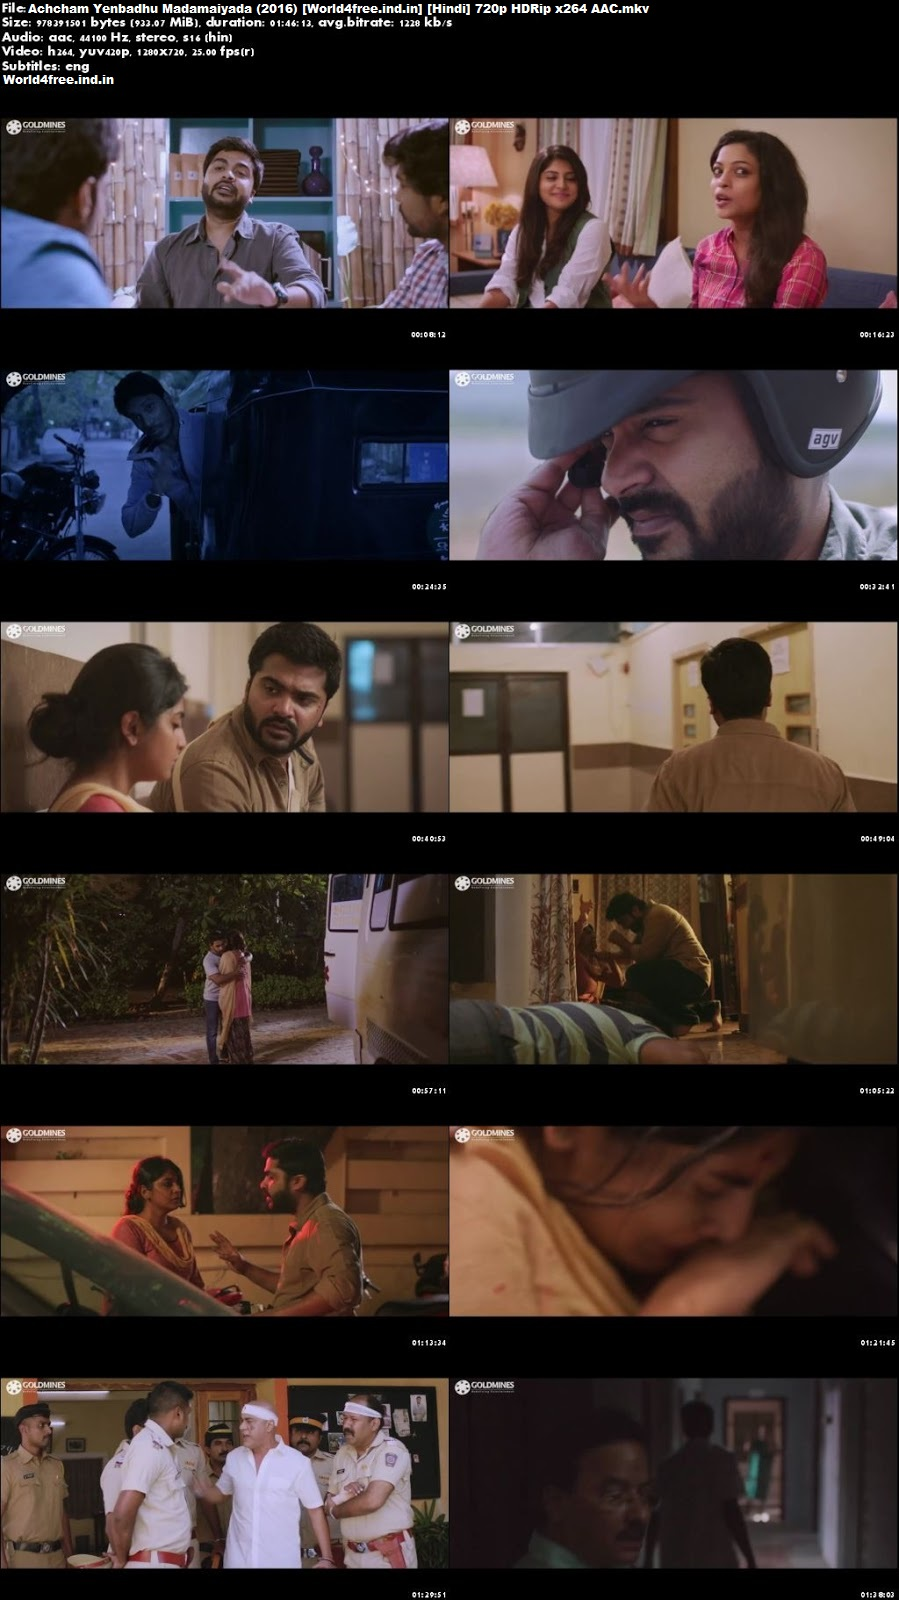 Achcham Yenbadhu Madamaiyada 2016 world4free.ind.in HDRip 720p Hindi Dubbed Movie Download